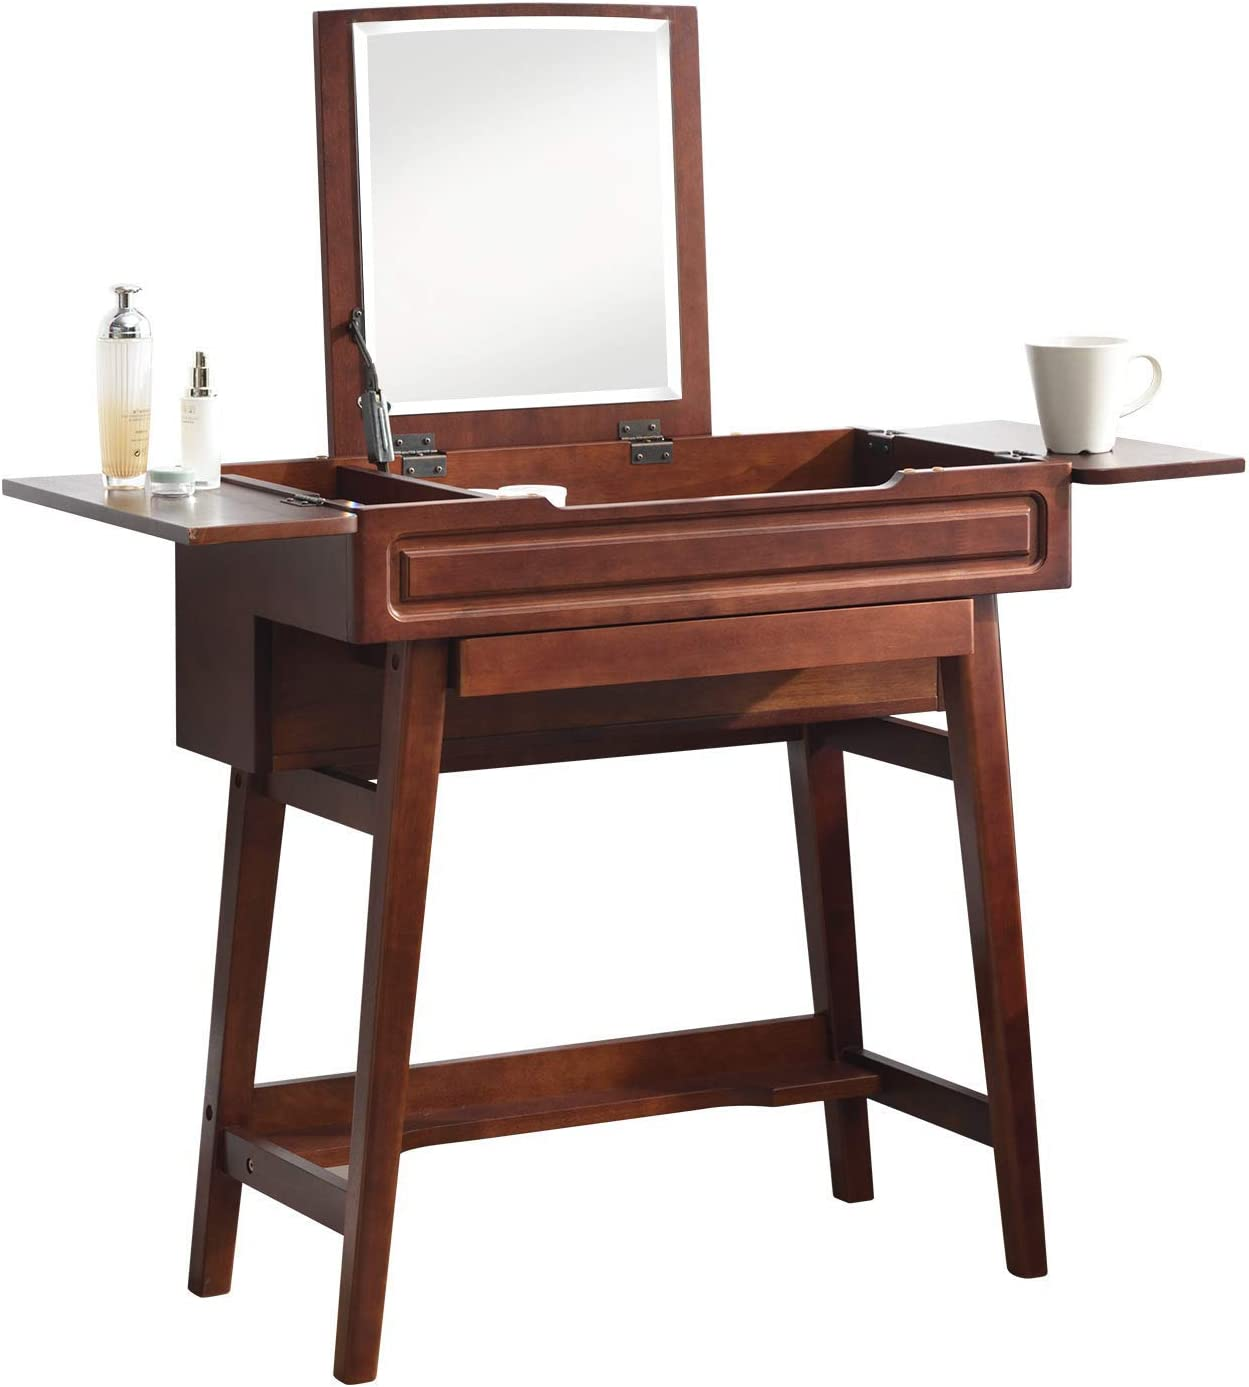 Vlush Vanity Makeup Table with Flip Top Mirror Solid Rubber Wood Dressing Table Writing Desk, 6 Organizers Makeup Accessories 1 Drawer, Coffee